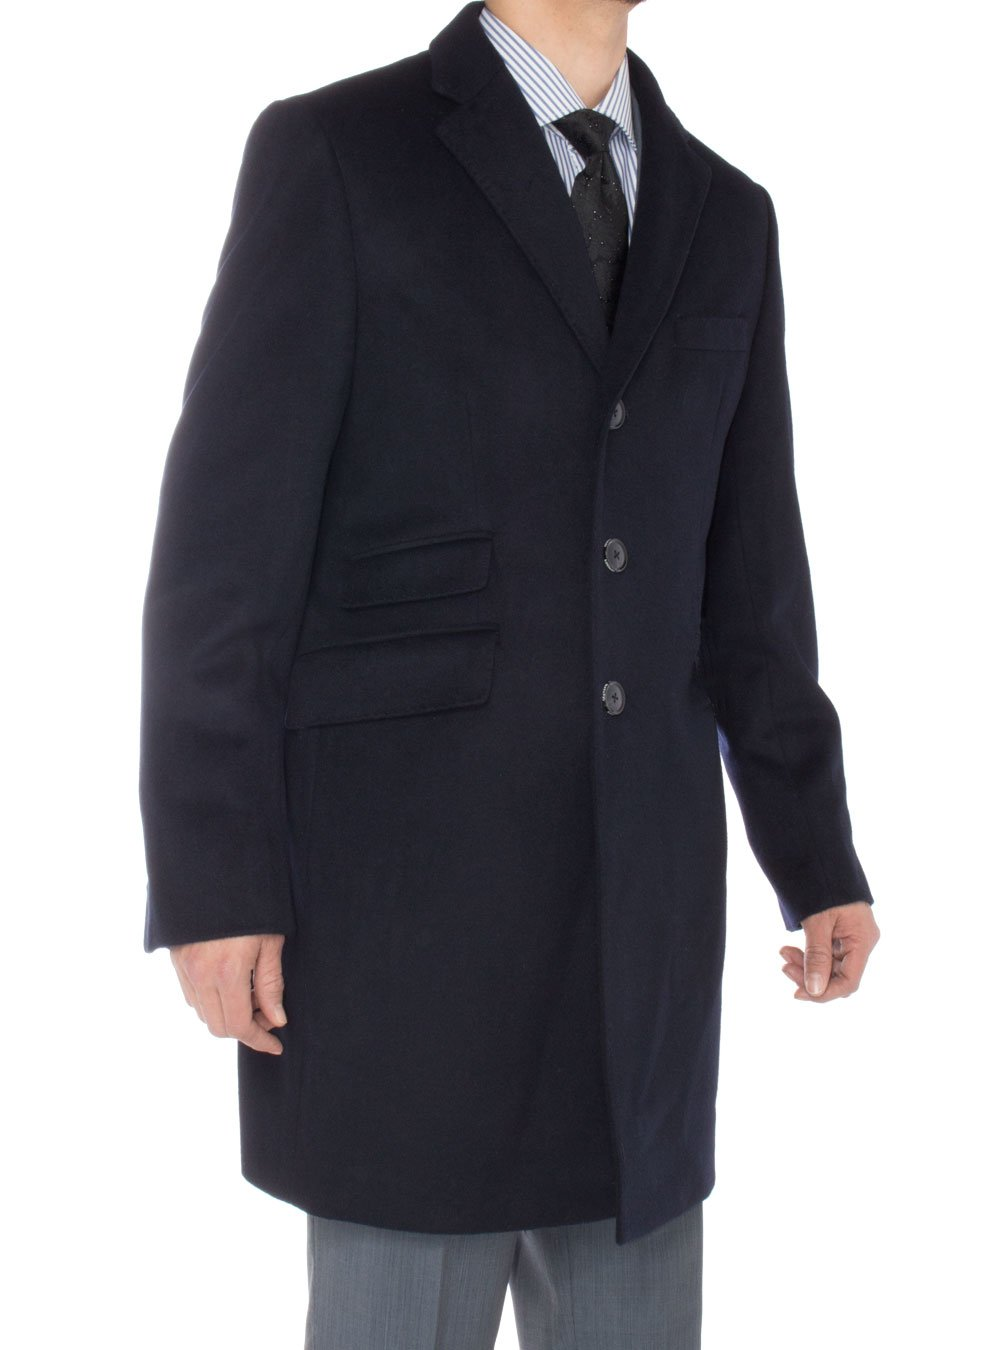 Luciano Natazzi Men's Cashmere Topcoat Modern Ticket Pocket Trench Coat Overcoat (48 US - 58 EU, Navy Blue) by Luciano Natazzi (Image #3)